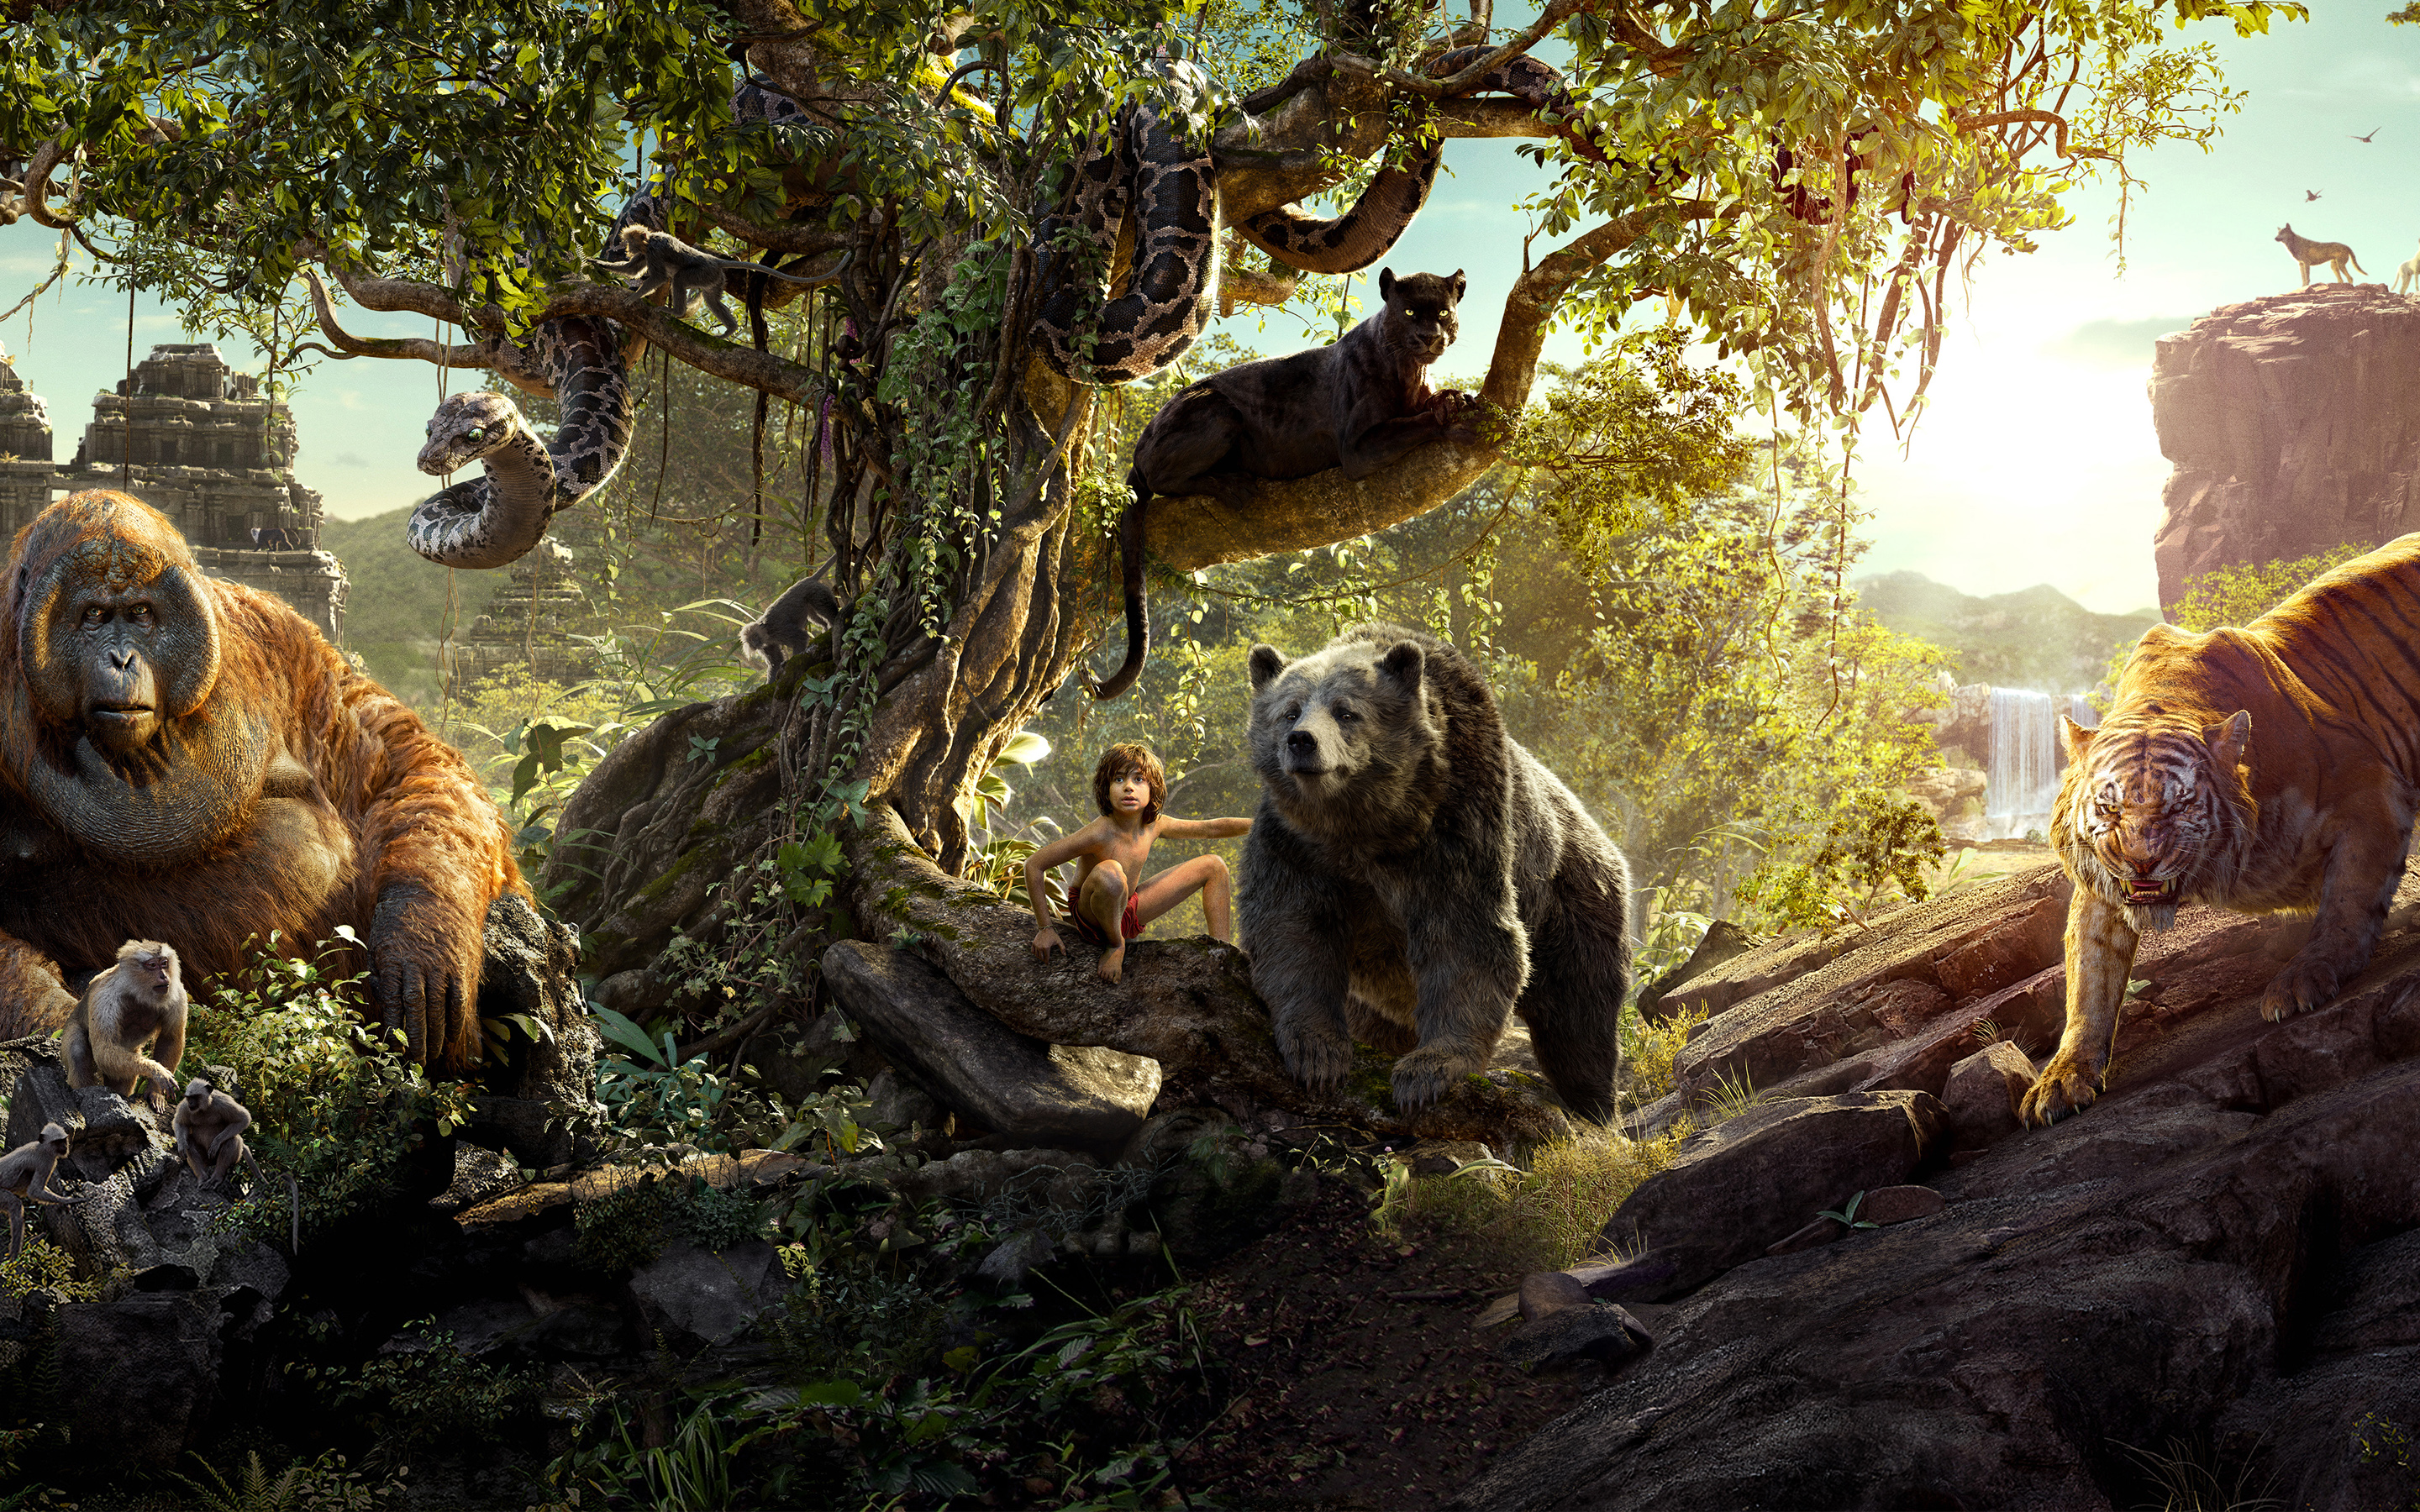 Wallpaper Jungle Book